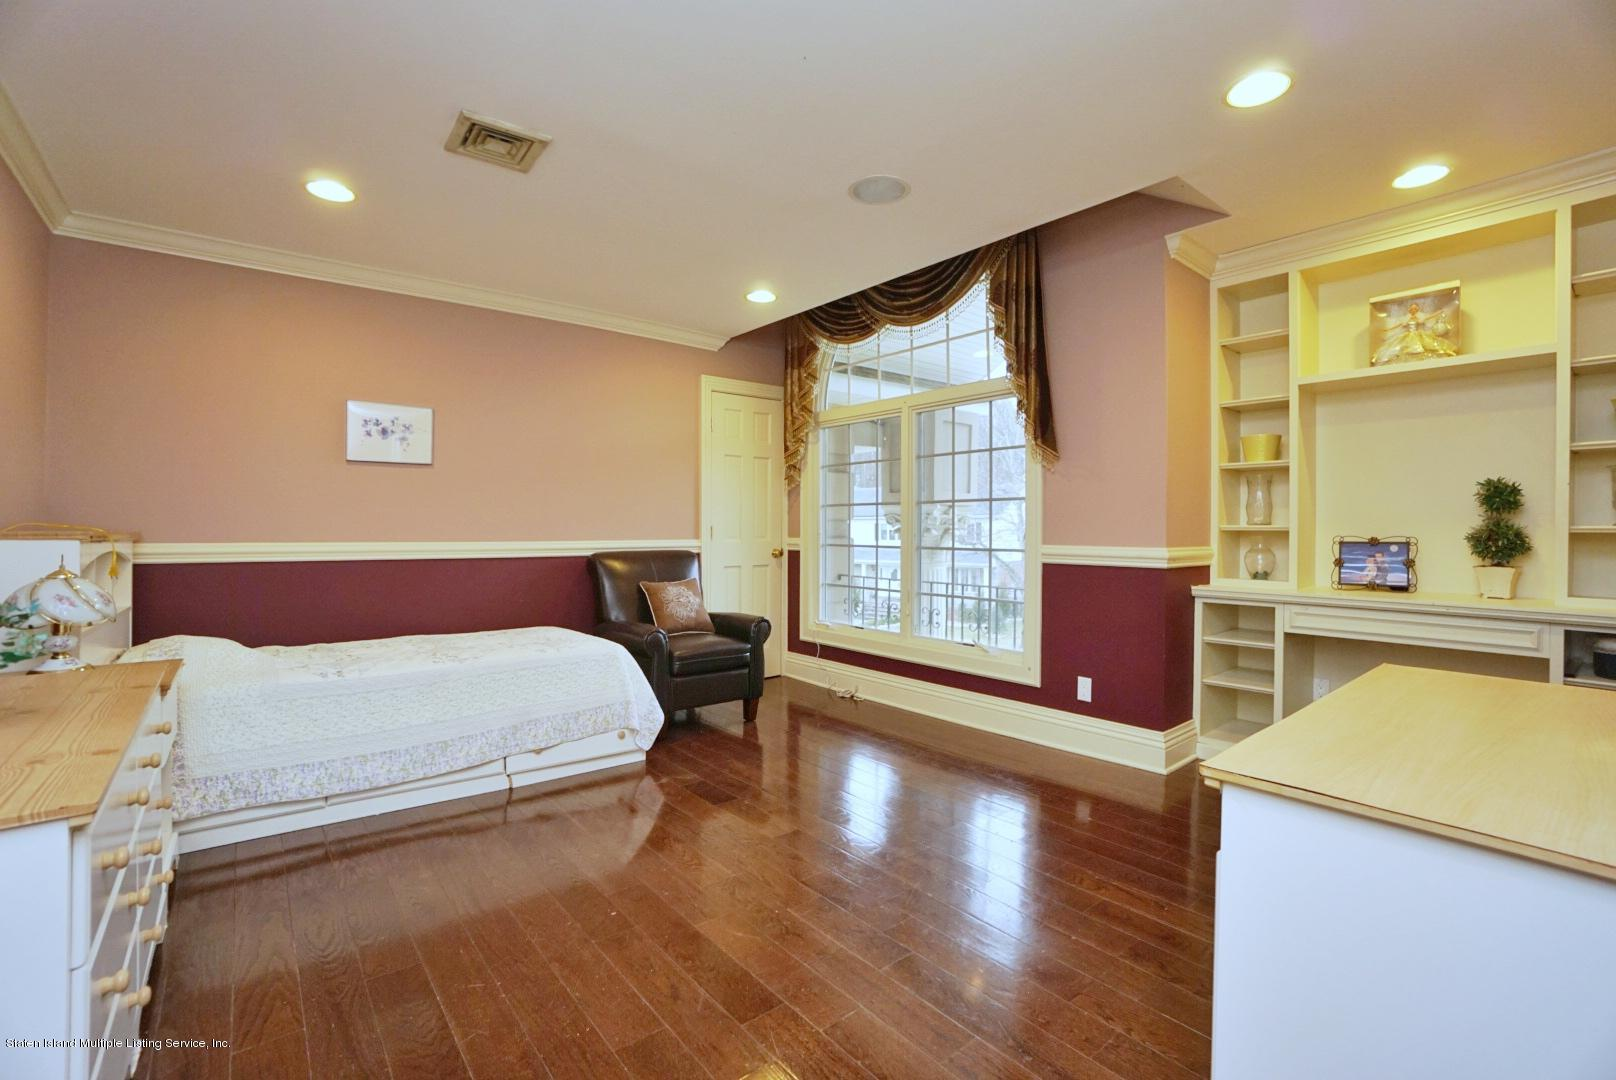 Single Family - Detached 1 Buttonwood Road   Staten Island, NY 10304, MLS-1135318-34